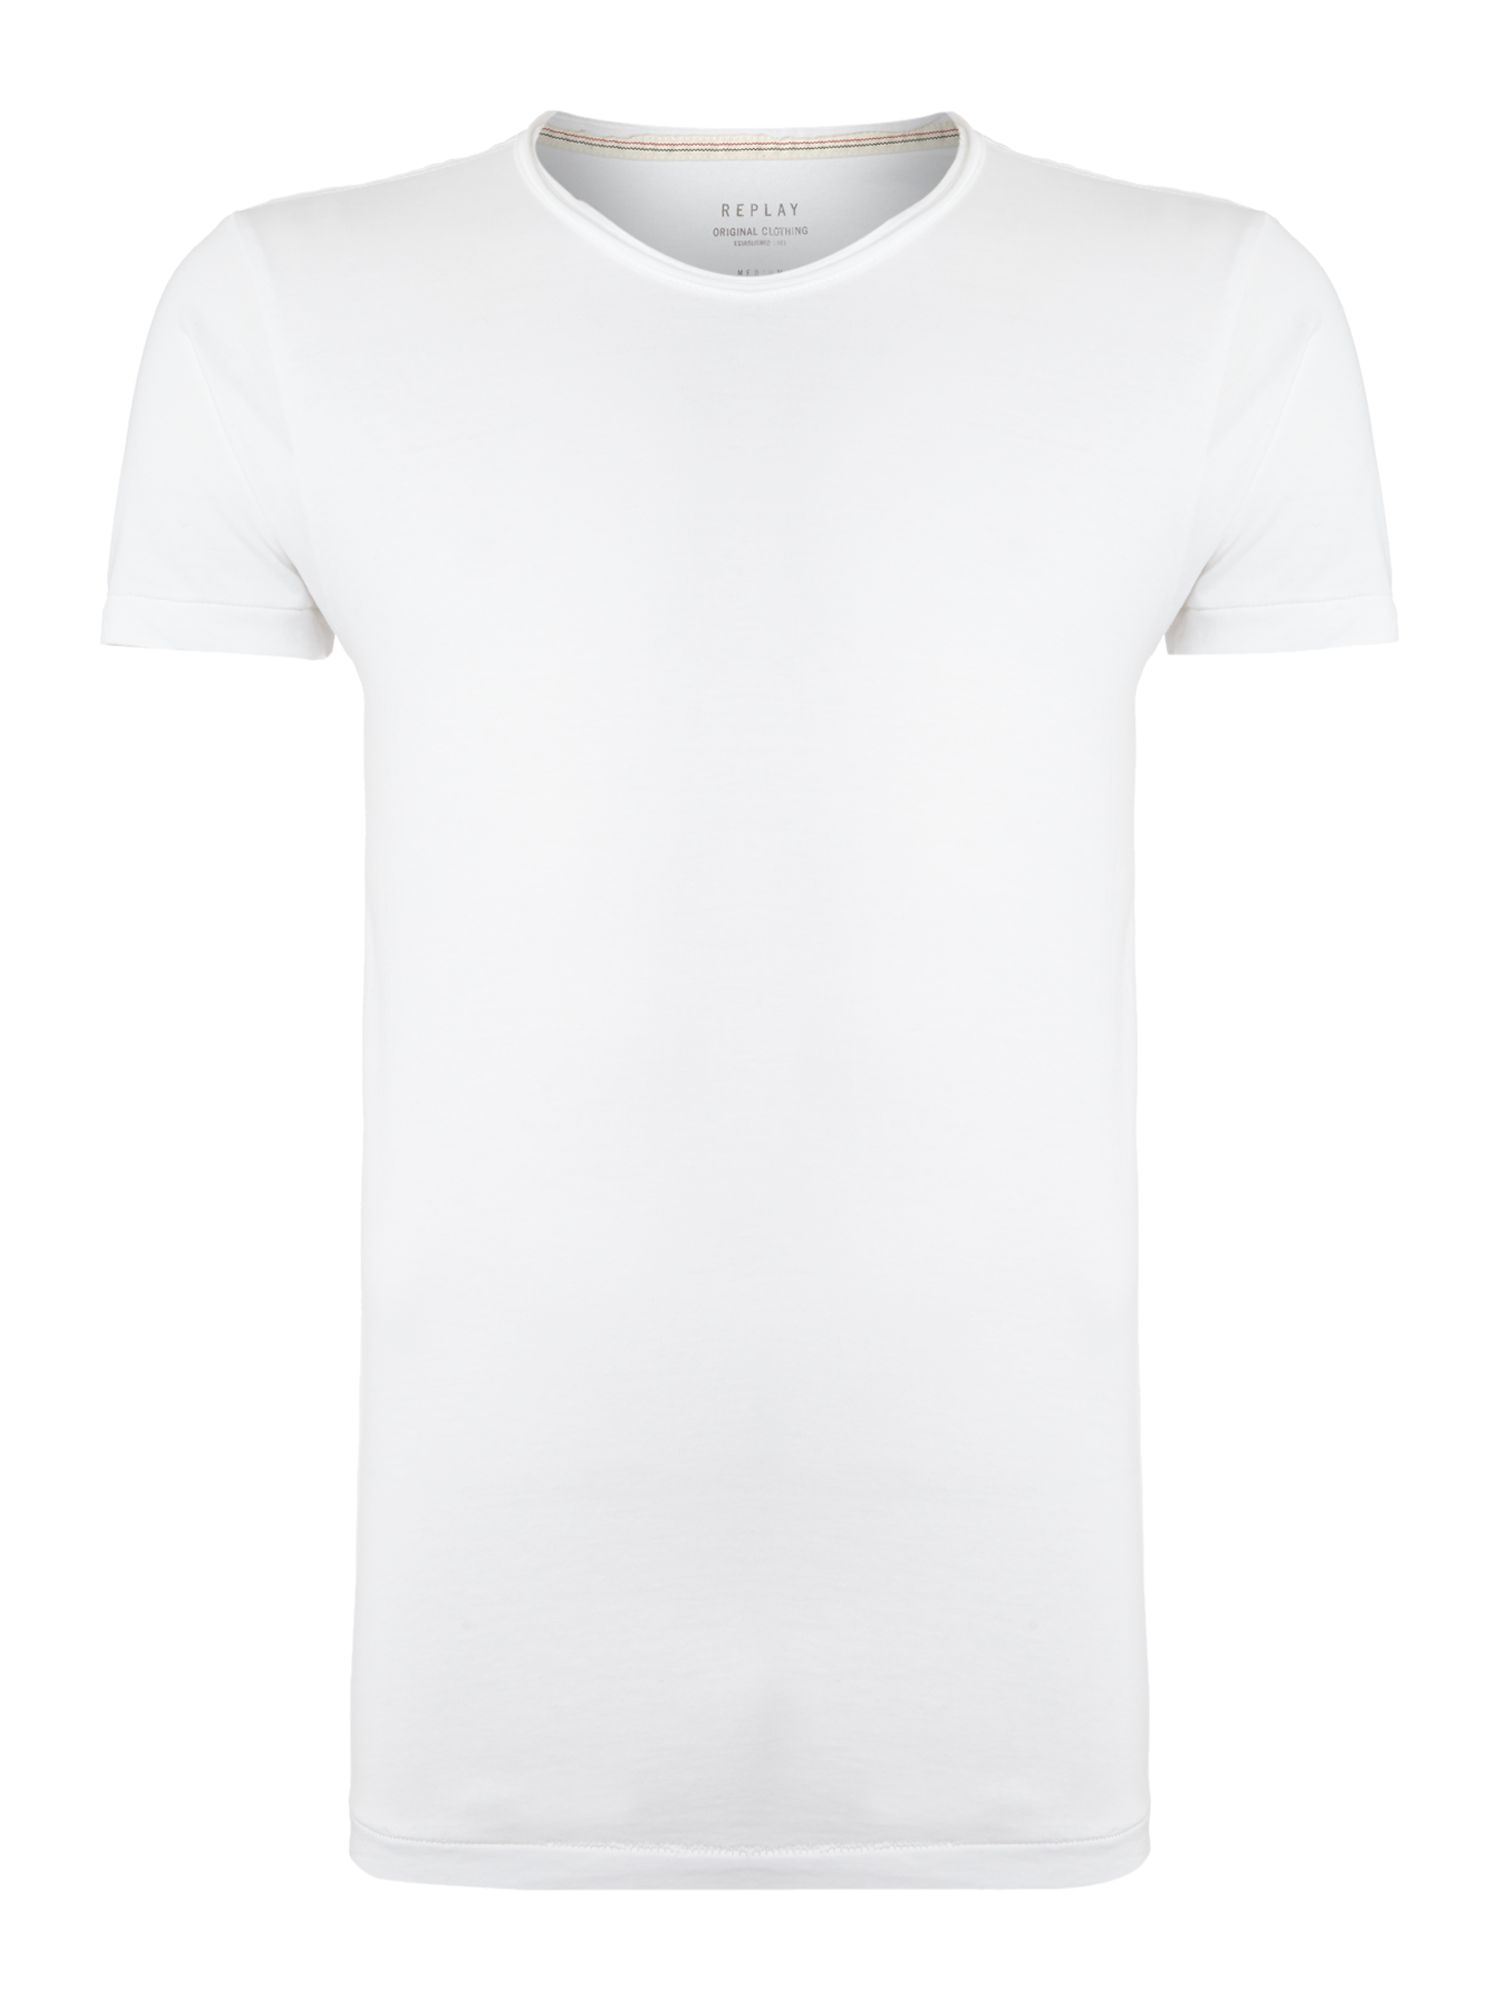 Round collar regular fit jersey t-shirt